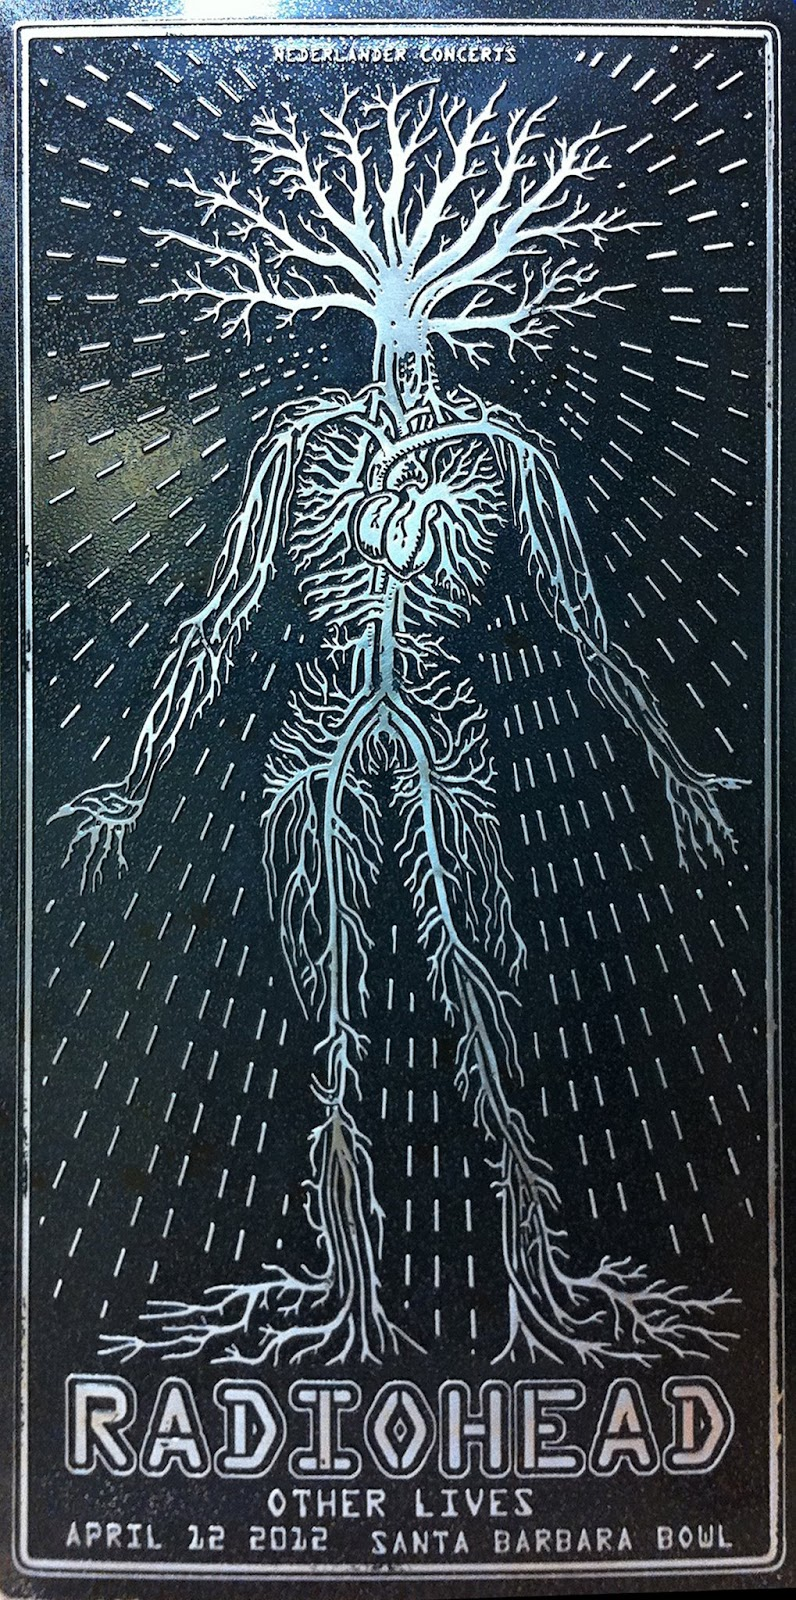 EMEK  |  Radiohead   Embossed Aluminium | Edition: 50 | 12 x 24 | Signed and Numbered